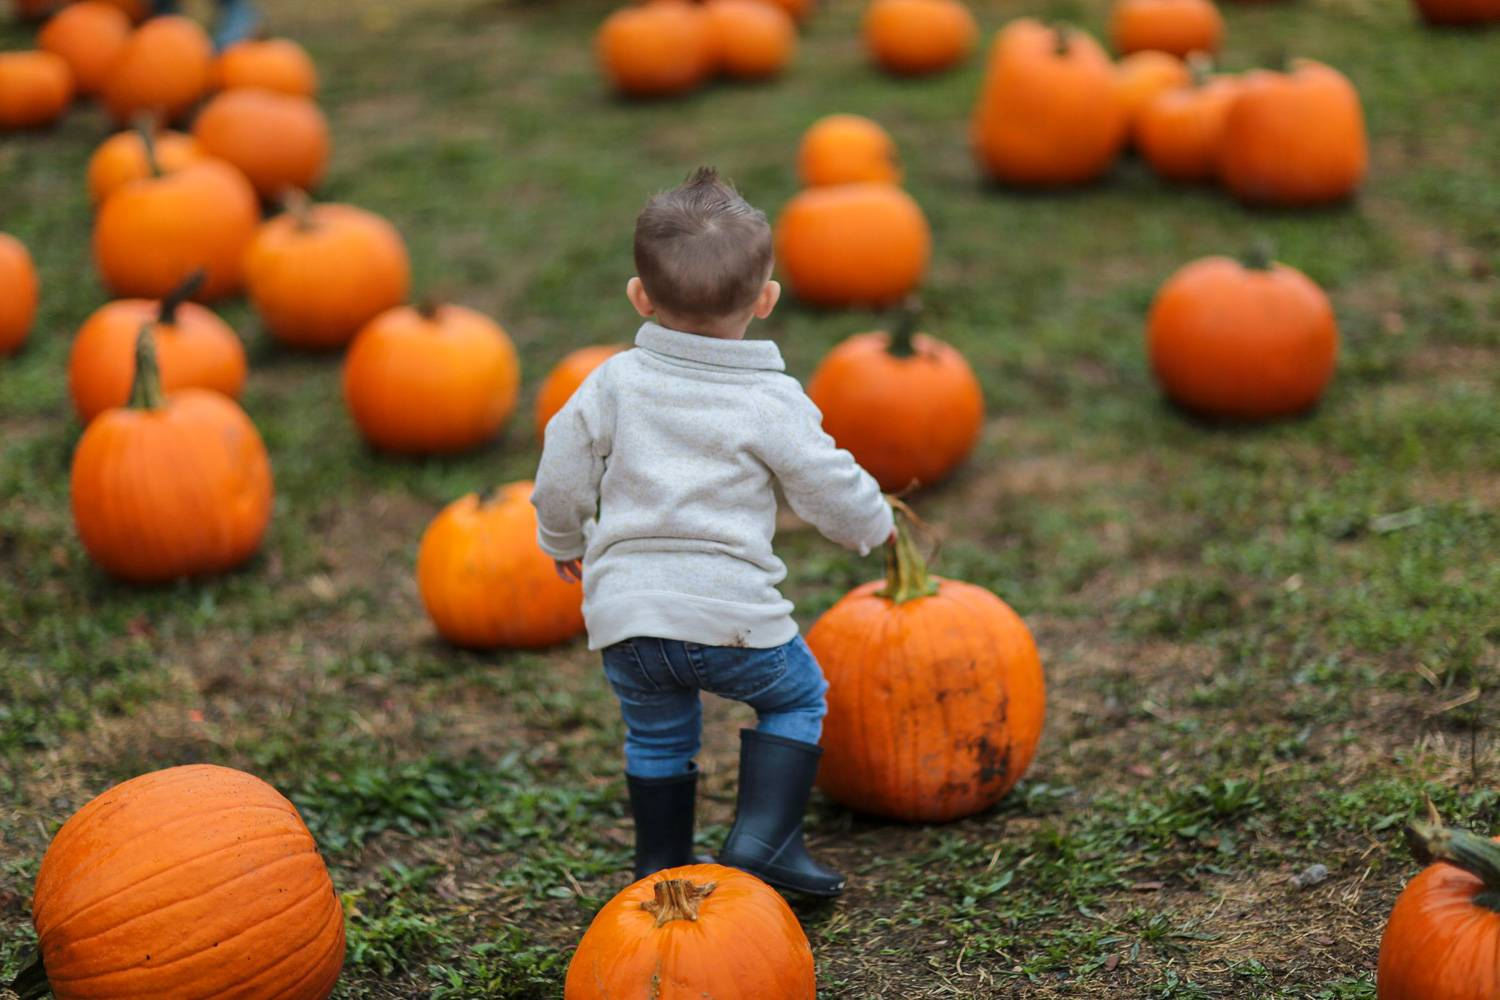 An image of a child roaming a pumpkin patch during the fall season.